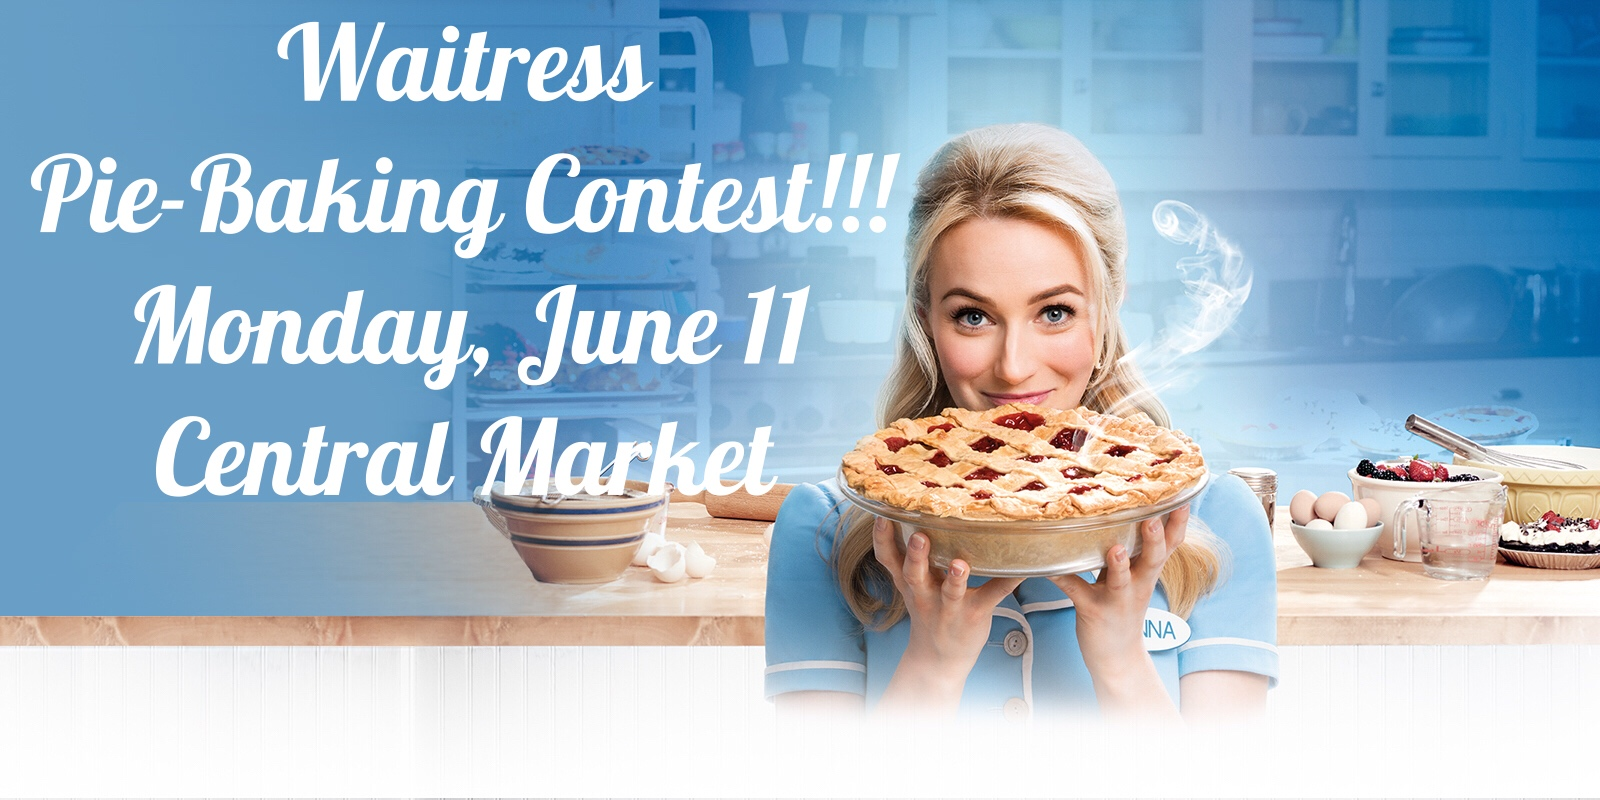 Thumbnail image for CONTEST! Enter Central Market's Pie-Baking contest for a shot at WAITRESS tickets & Central Market gift card! blog post